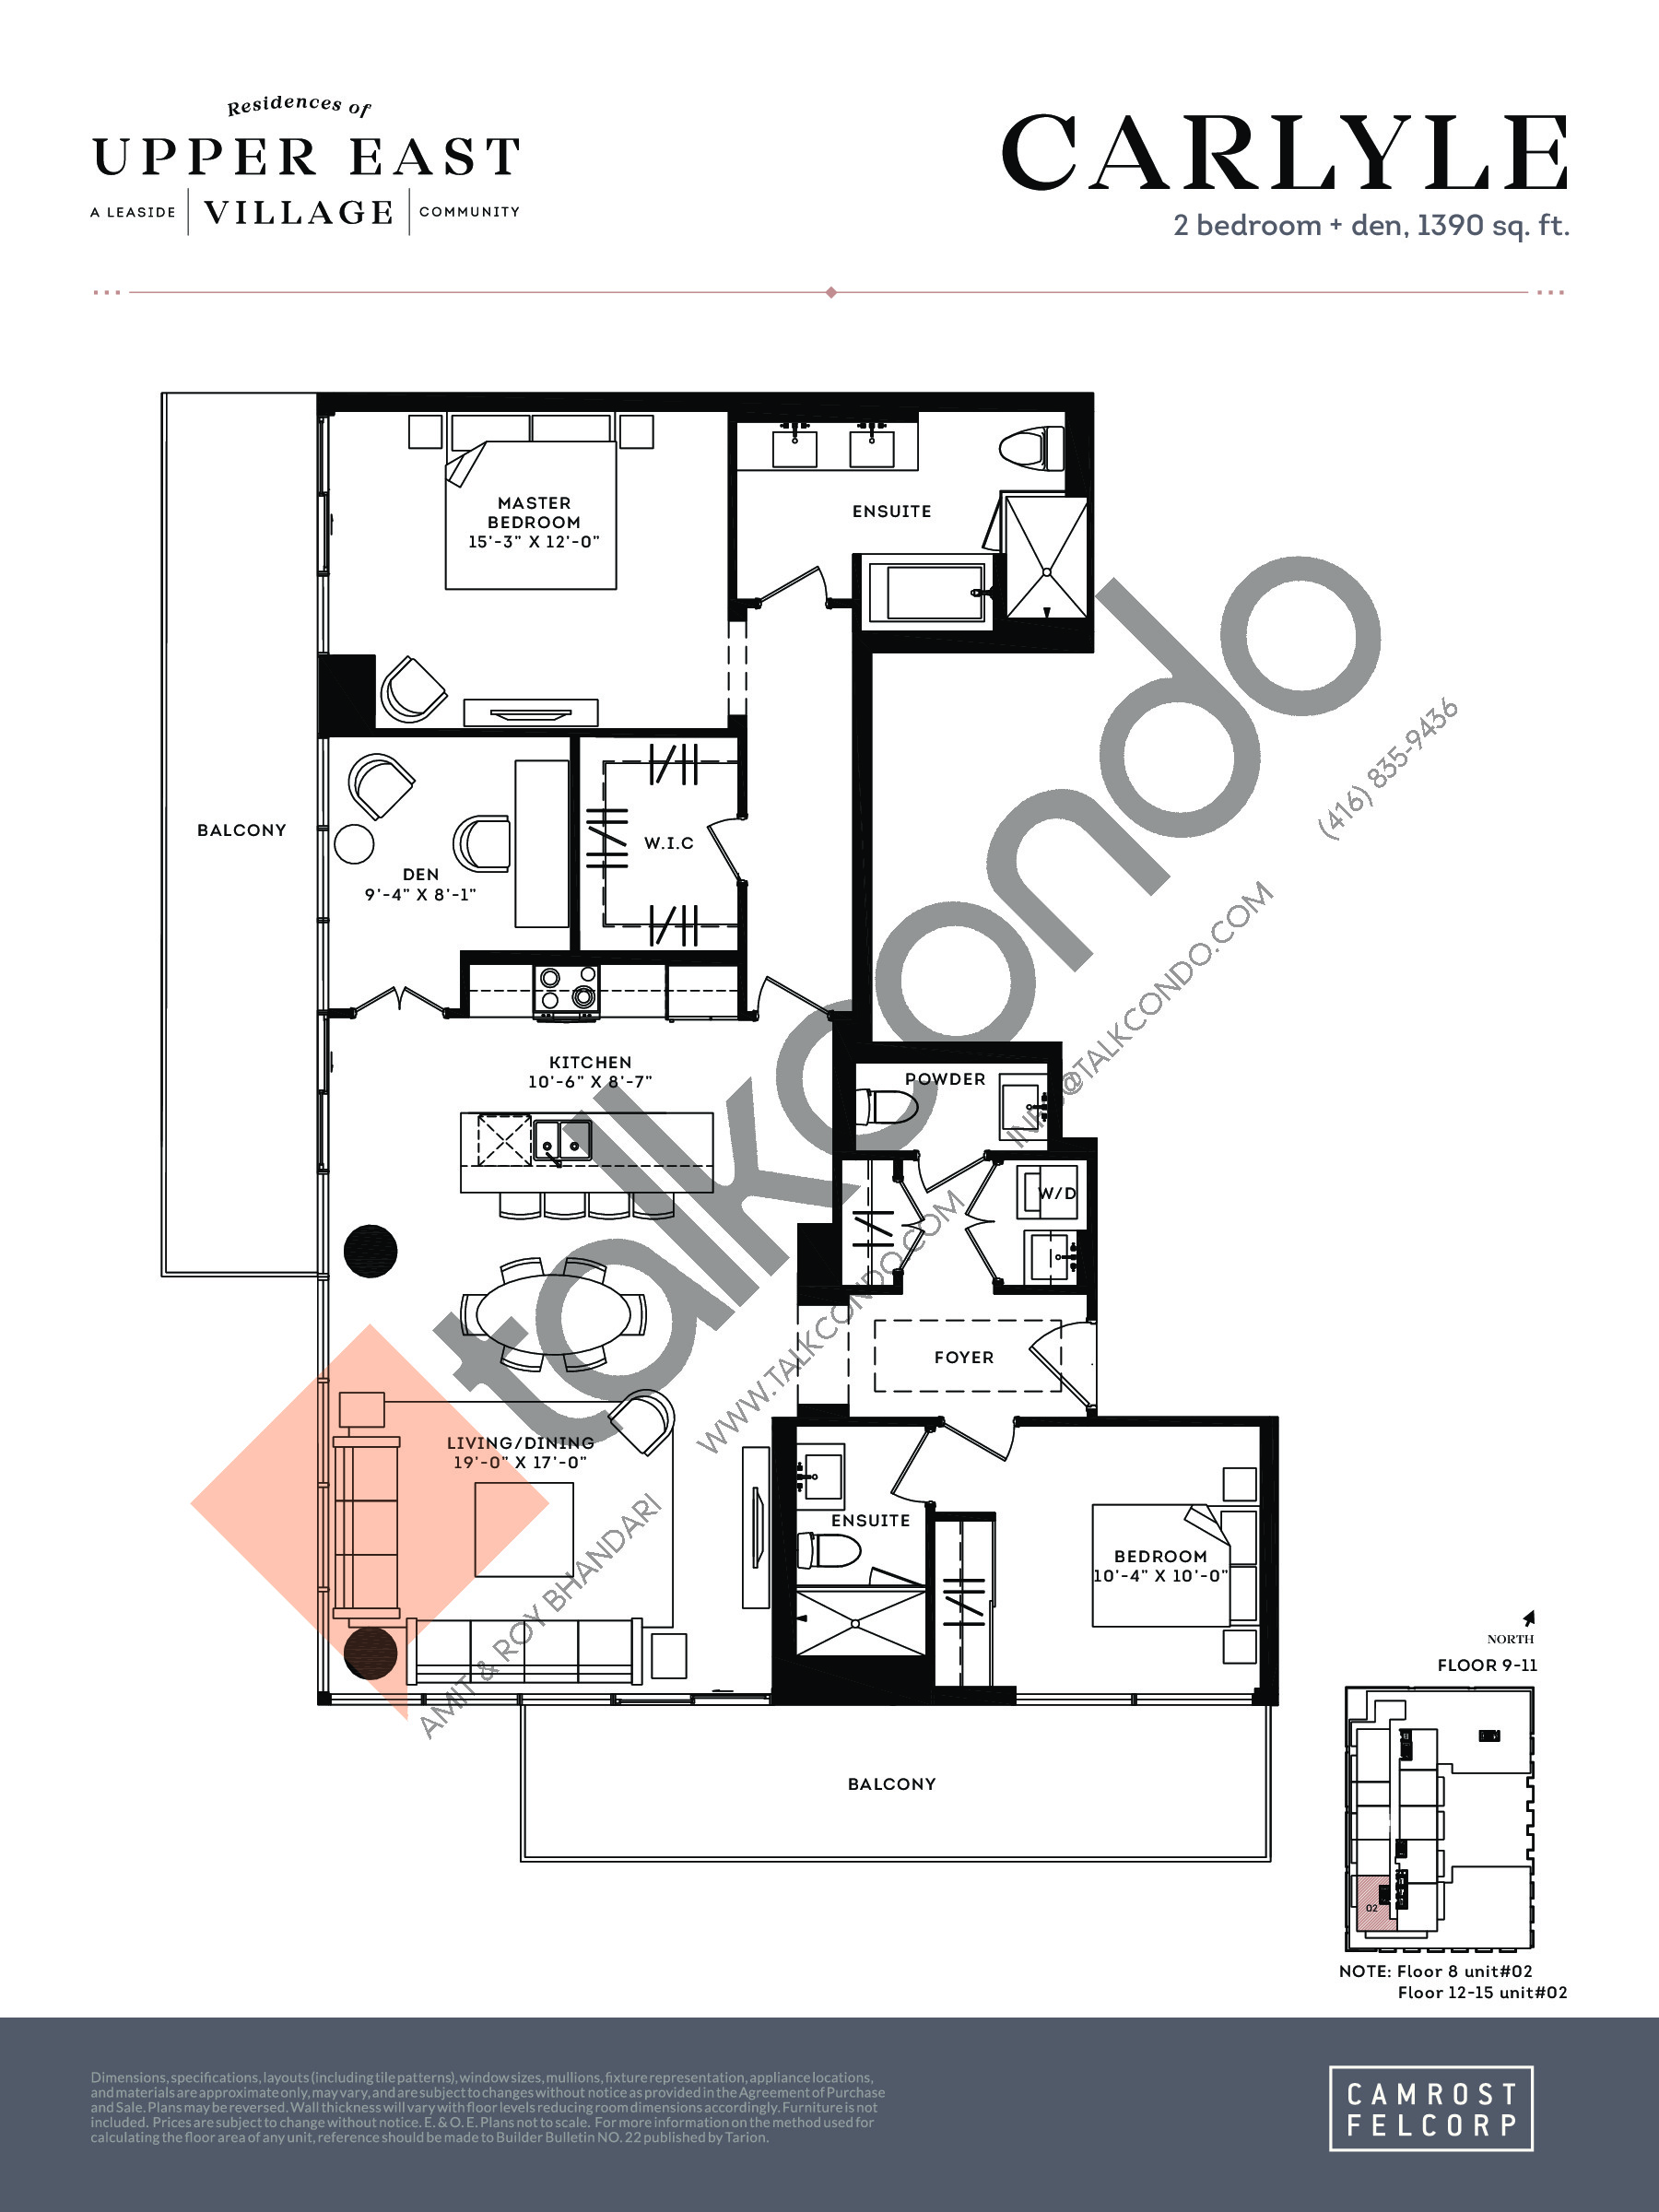 Carlyle Floor Plan at Upper East Village Condos - 1390 sq.ft